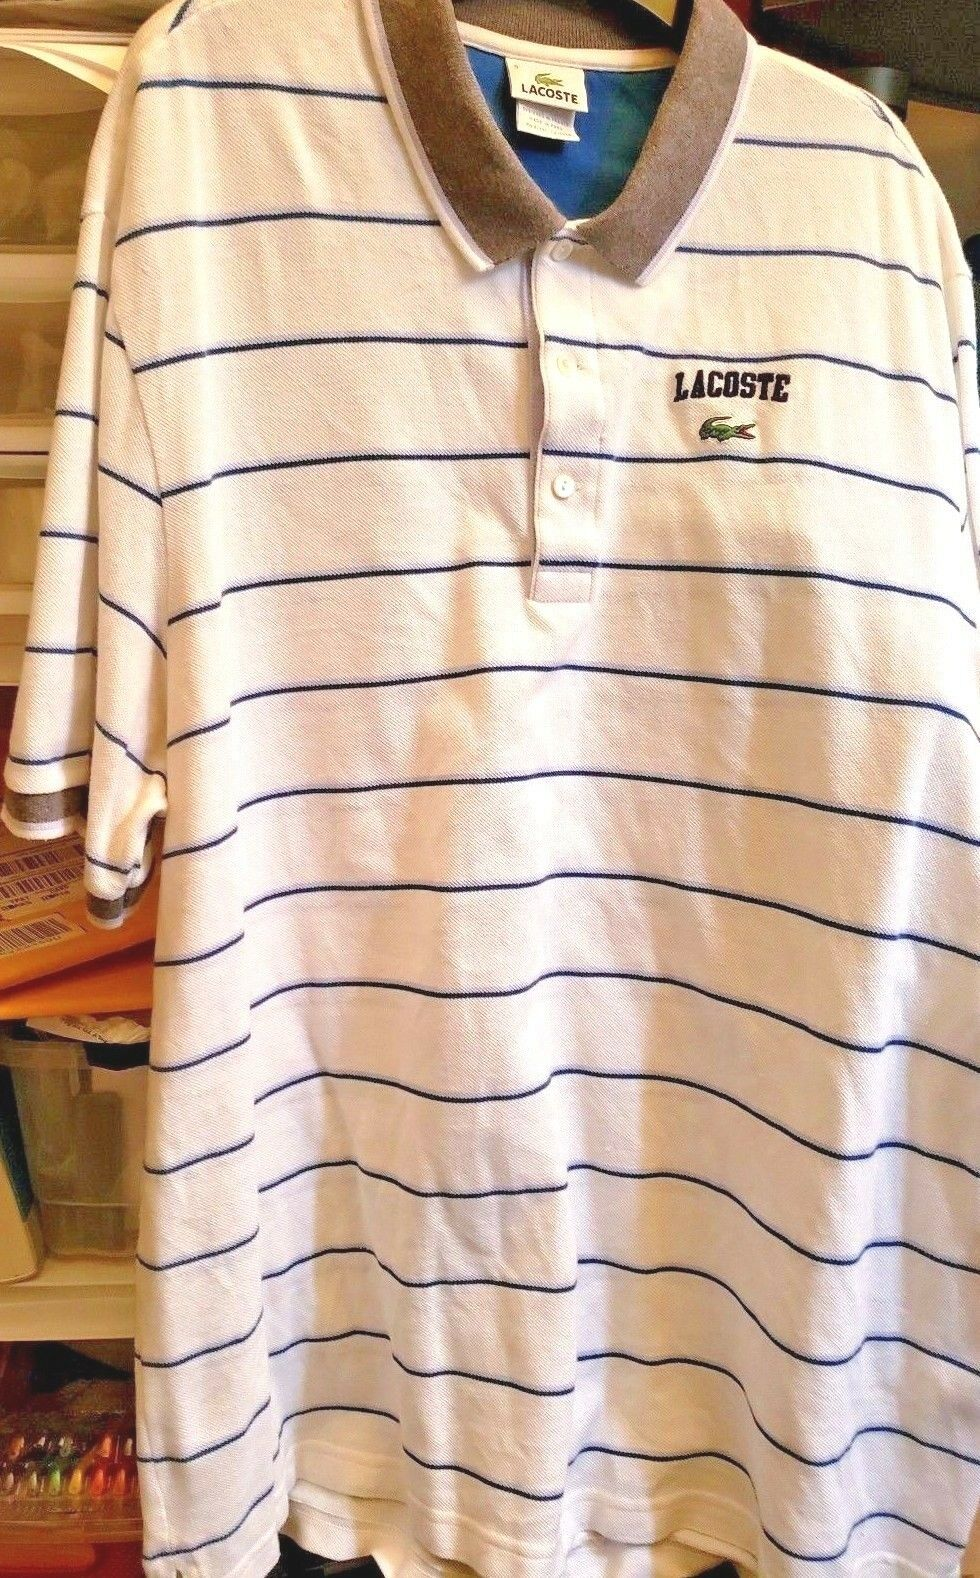 Lacoste Polo 9  Mens White bluee Striped Short Sleeve Shirt size 9